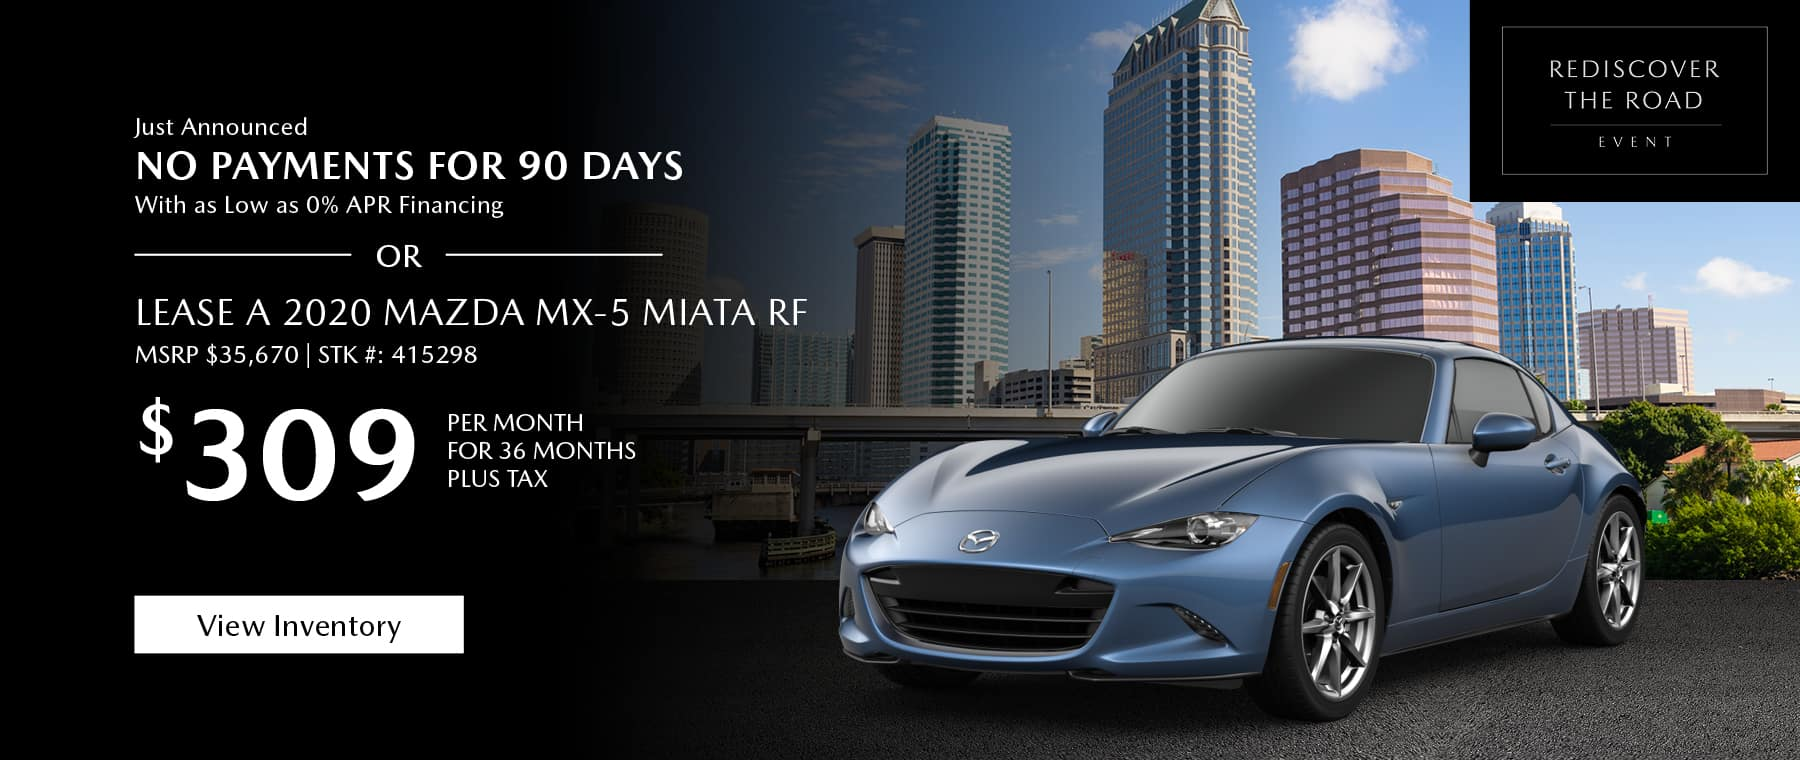 Just Announced, No payments for 90 days with as low as %0 APR financing, or lease the 2020 Mazda MX-5 Miata RF for $309 per month, plus tax for 36 months. Click or tap here to view our inventory.